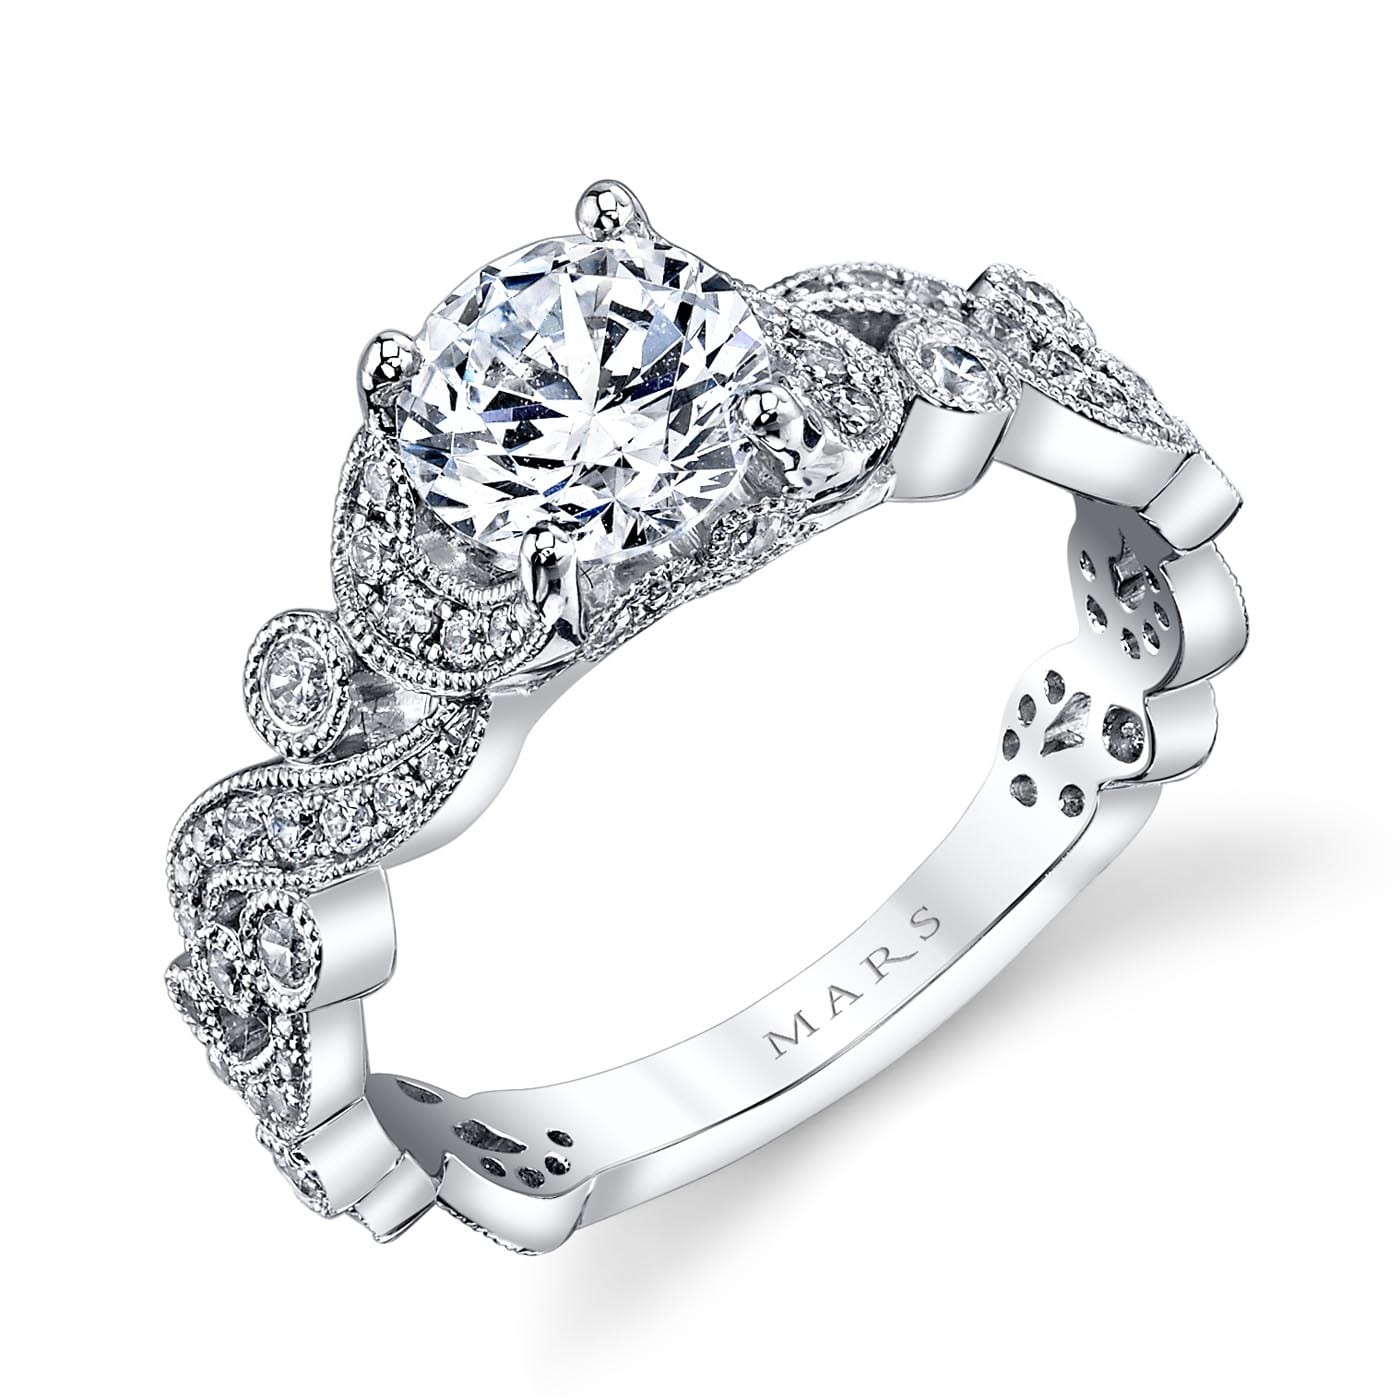 Floral Engagement RingStyle #: MARS 25988